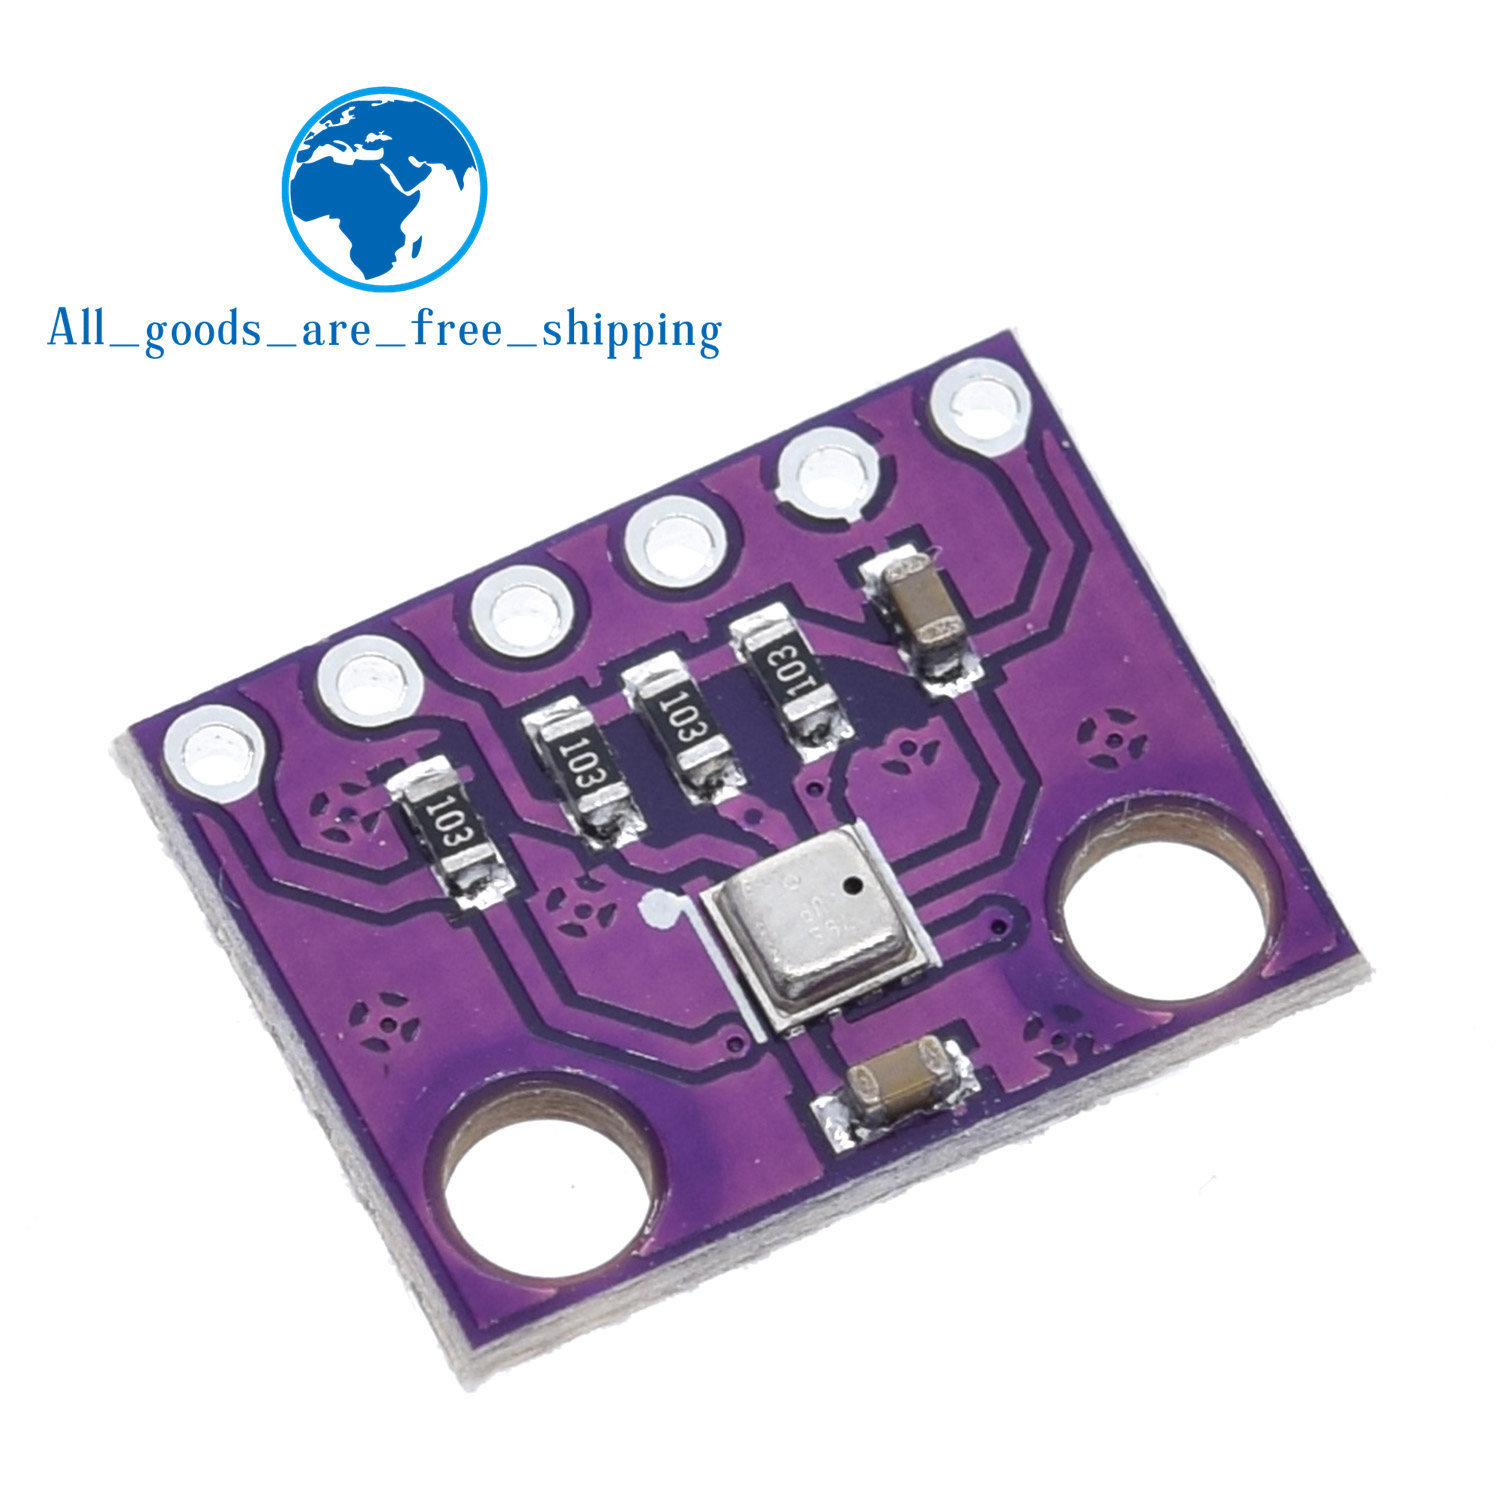 Image 4 - TZT  GY BME280 3.3 precision altimeter atmospheric pressure BME280 sensor module  for arduino-in Integrated Circuits from Electronic Components & Supplies